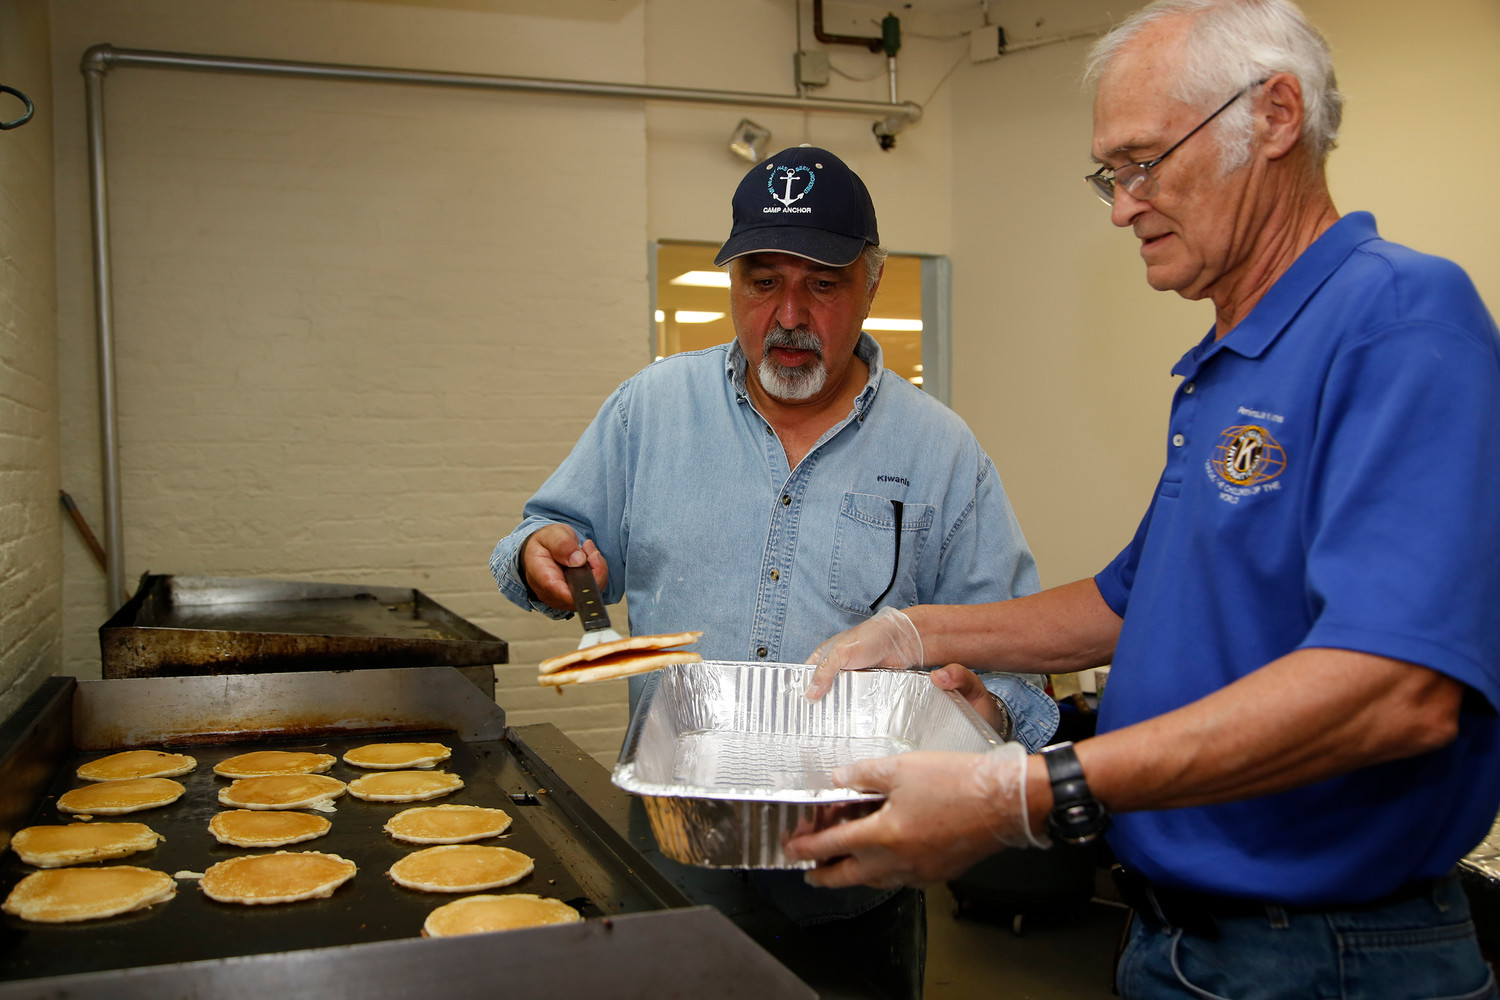 Dominick Curra loaded a tray of pancakes for Dennis Brining to serve at the Christmas Dream breakfast.